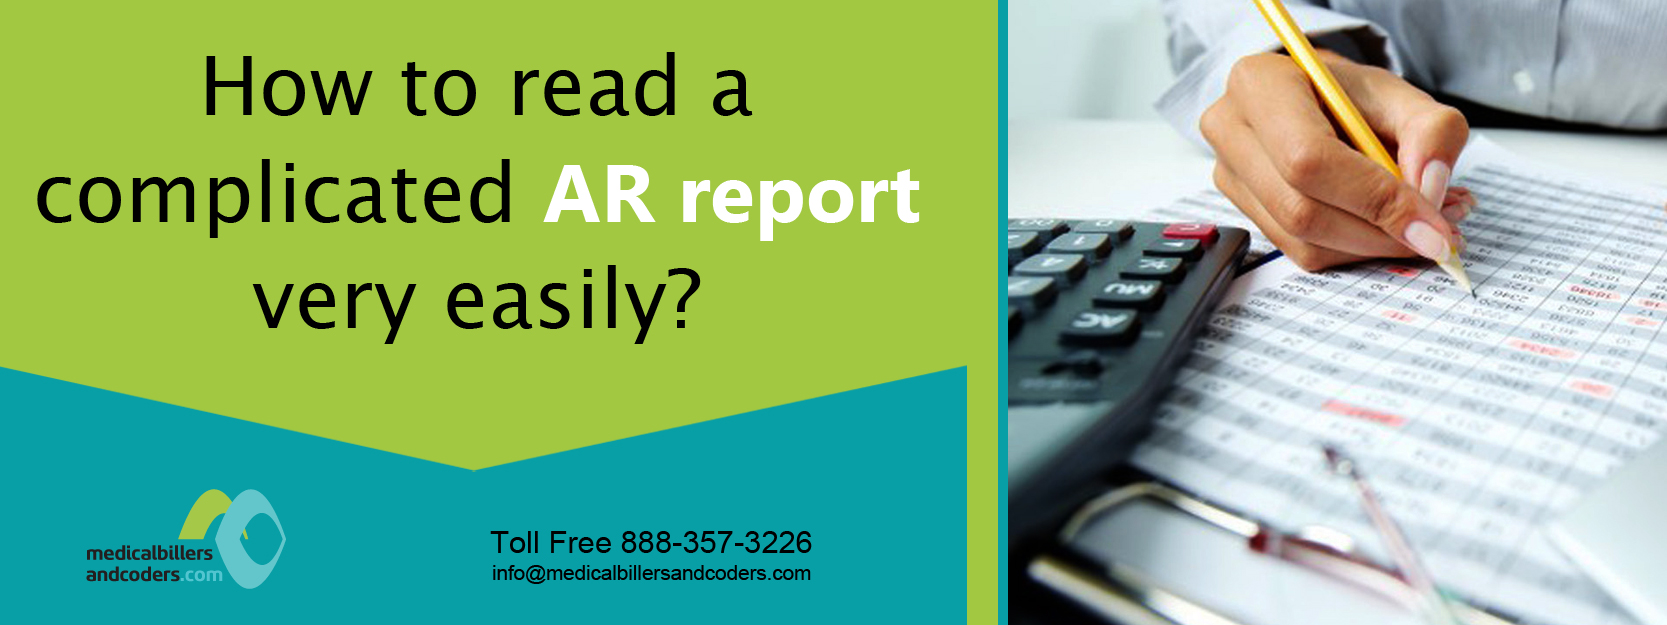 How to read a complicated AR report very easily?